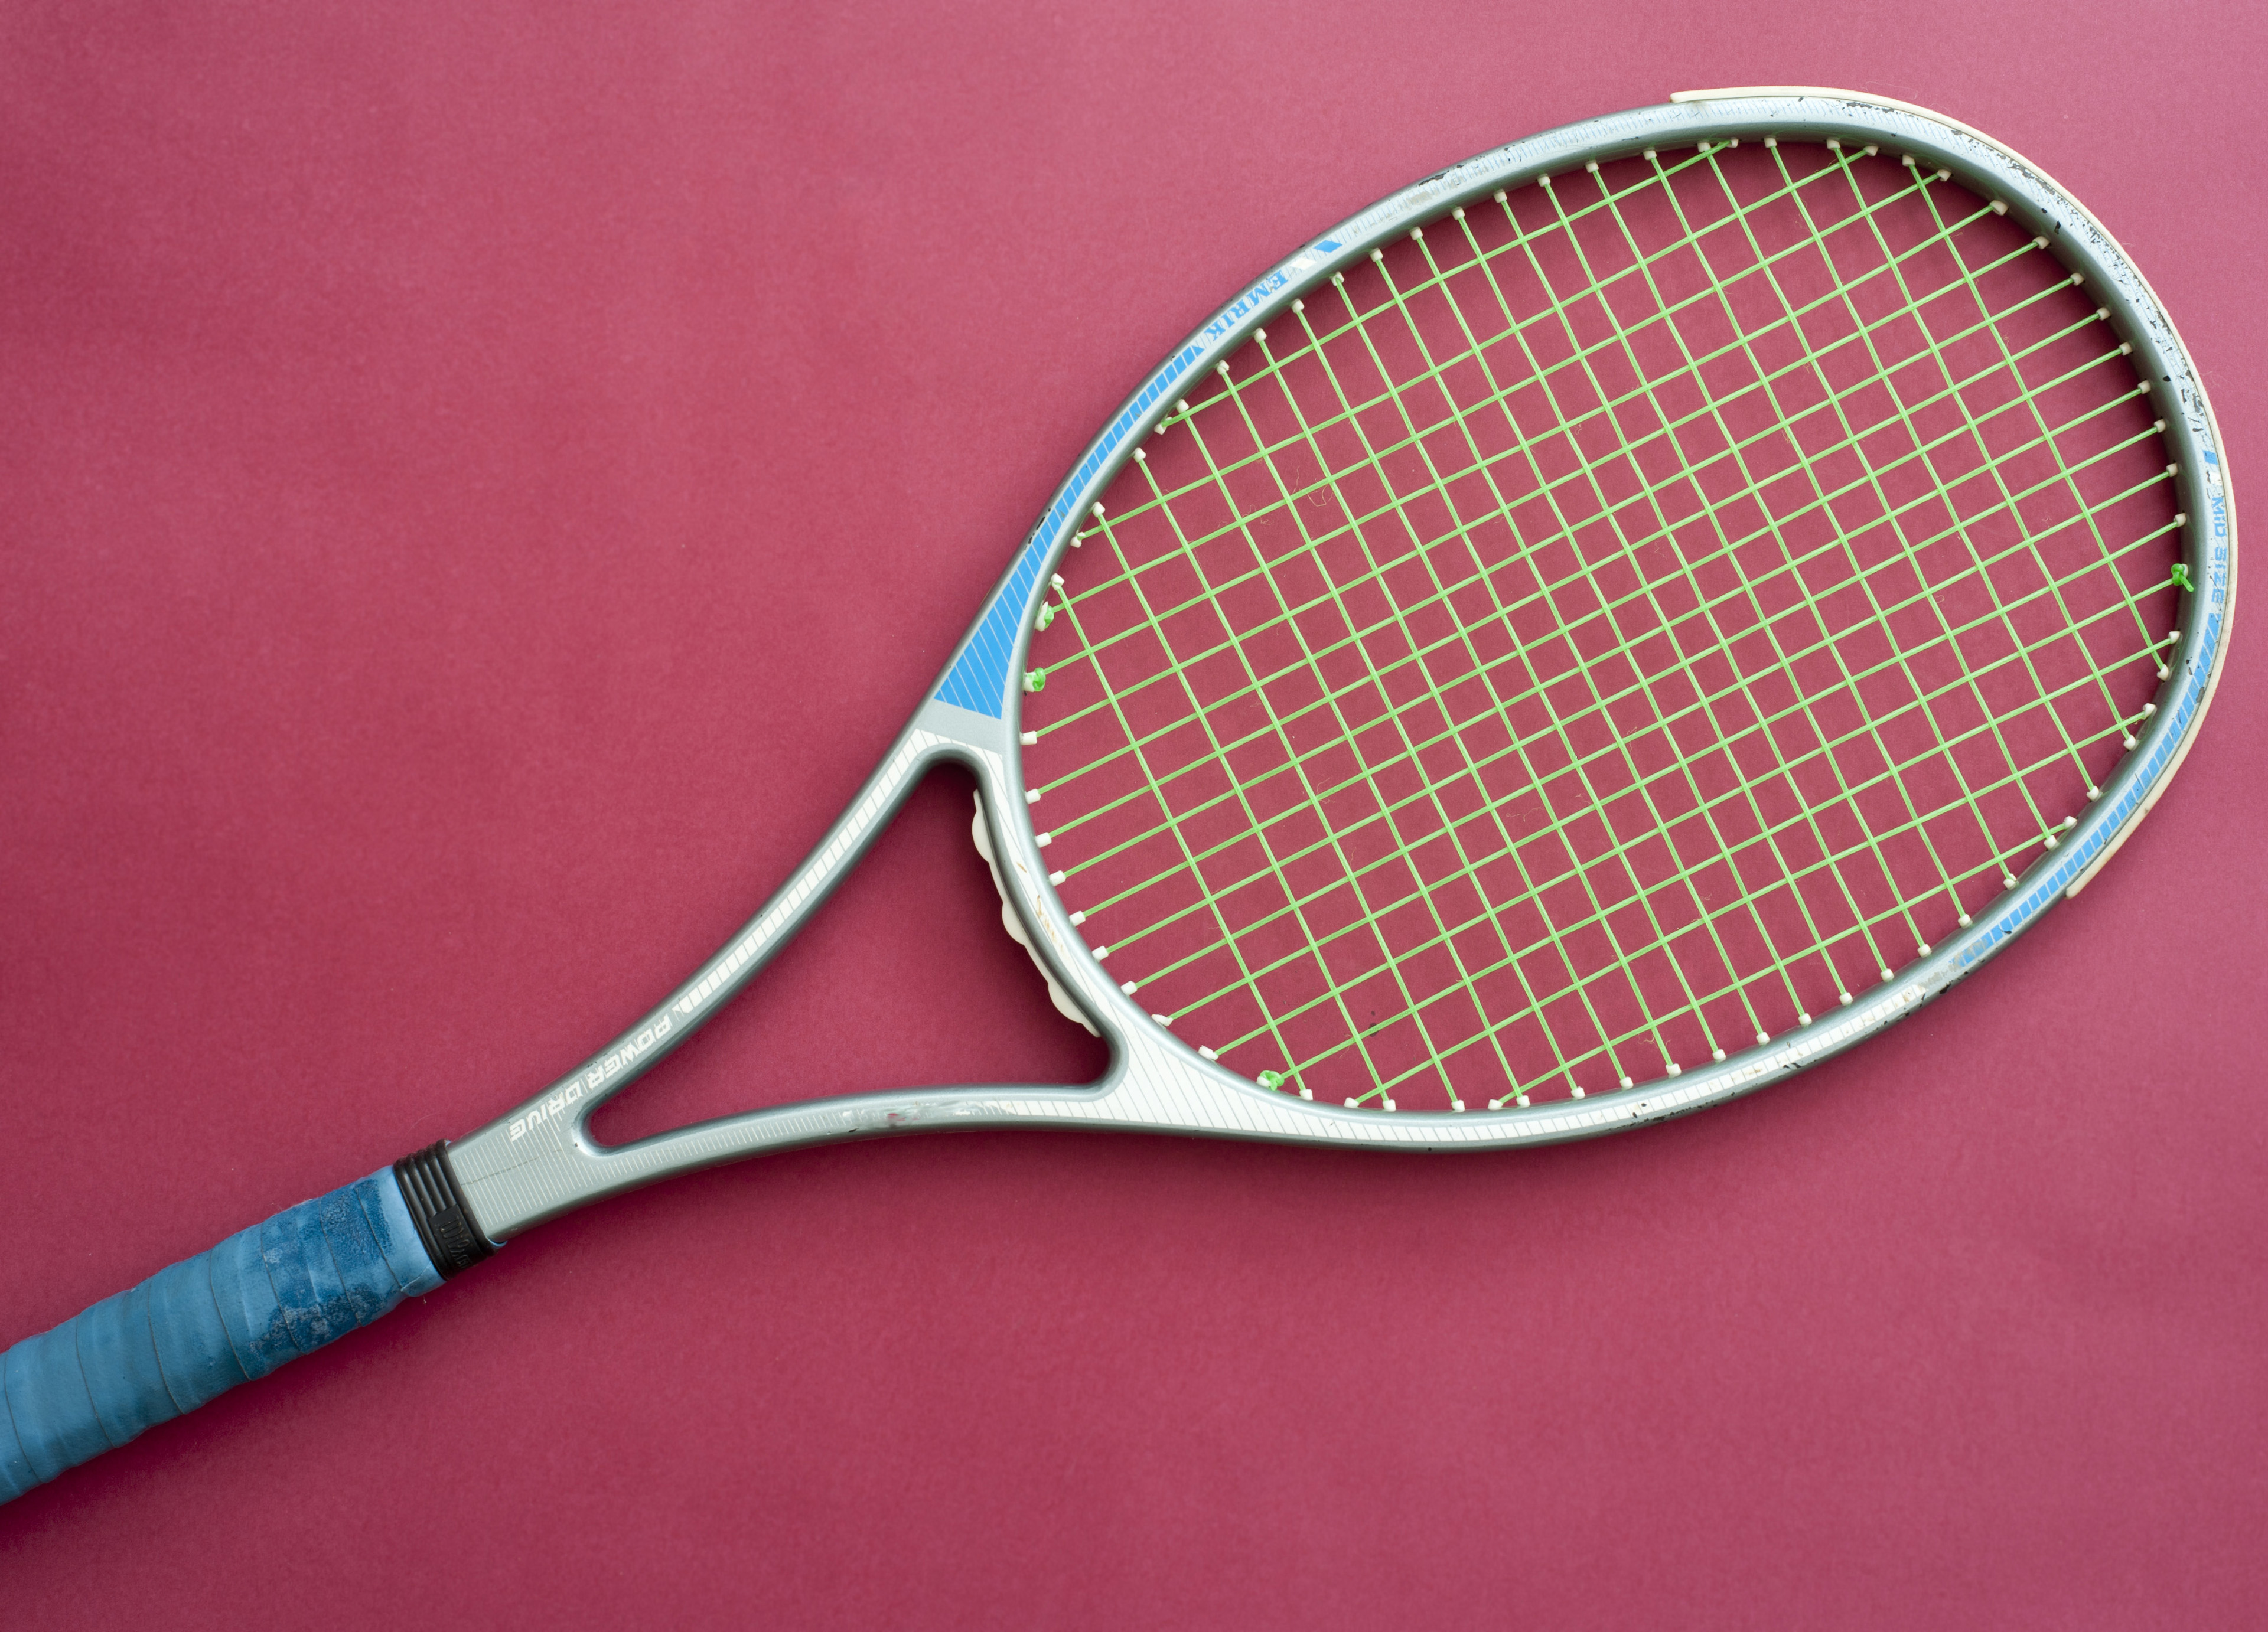 Modern metal frame tennis racket lying diagonally across the frame on a magenta background showing string detail